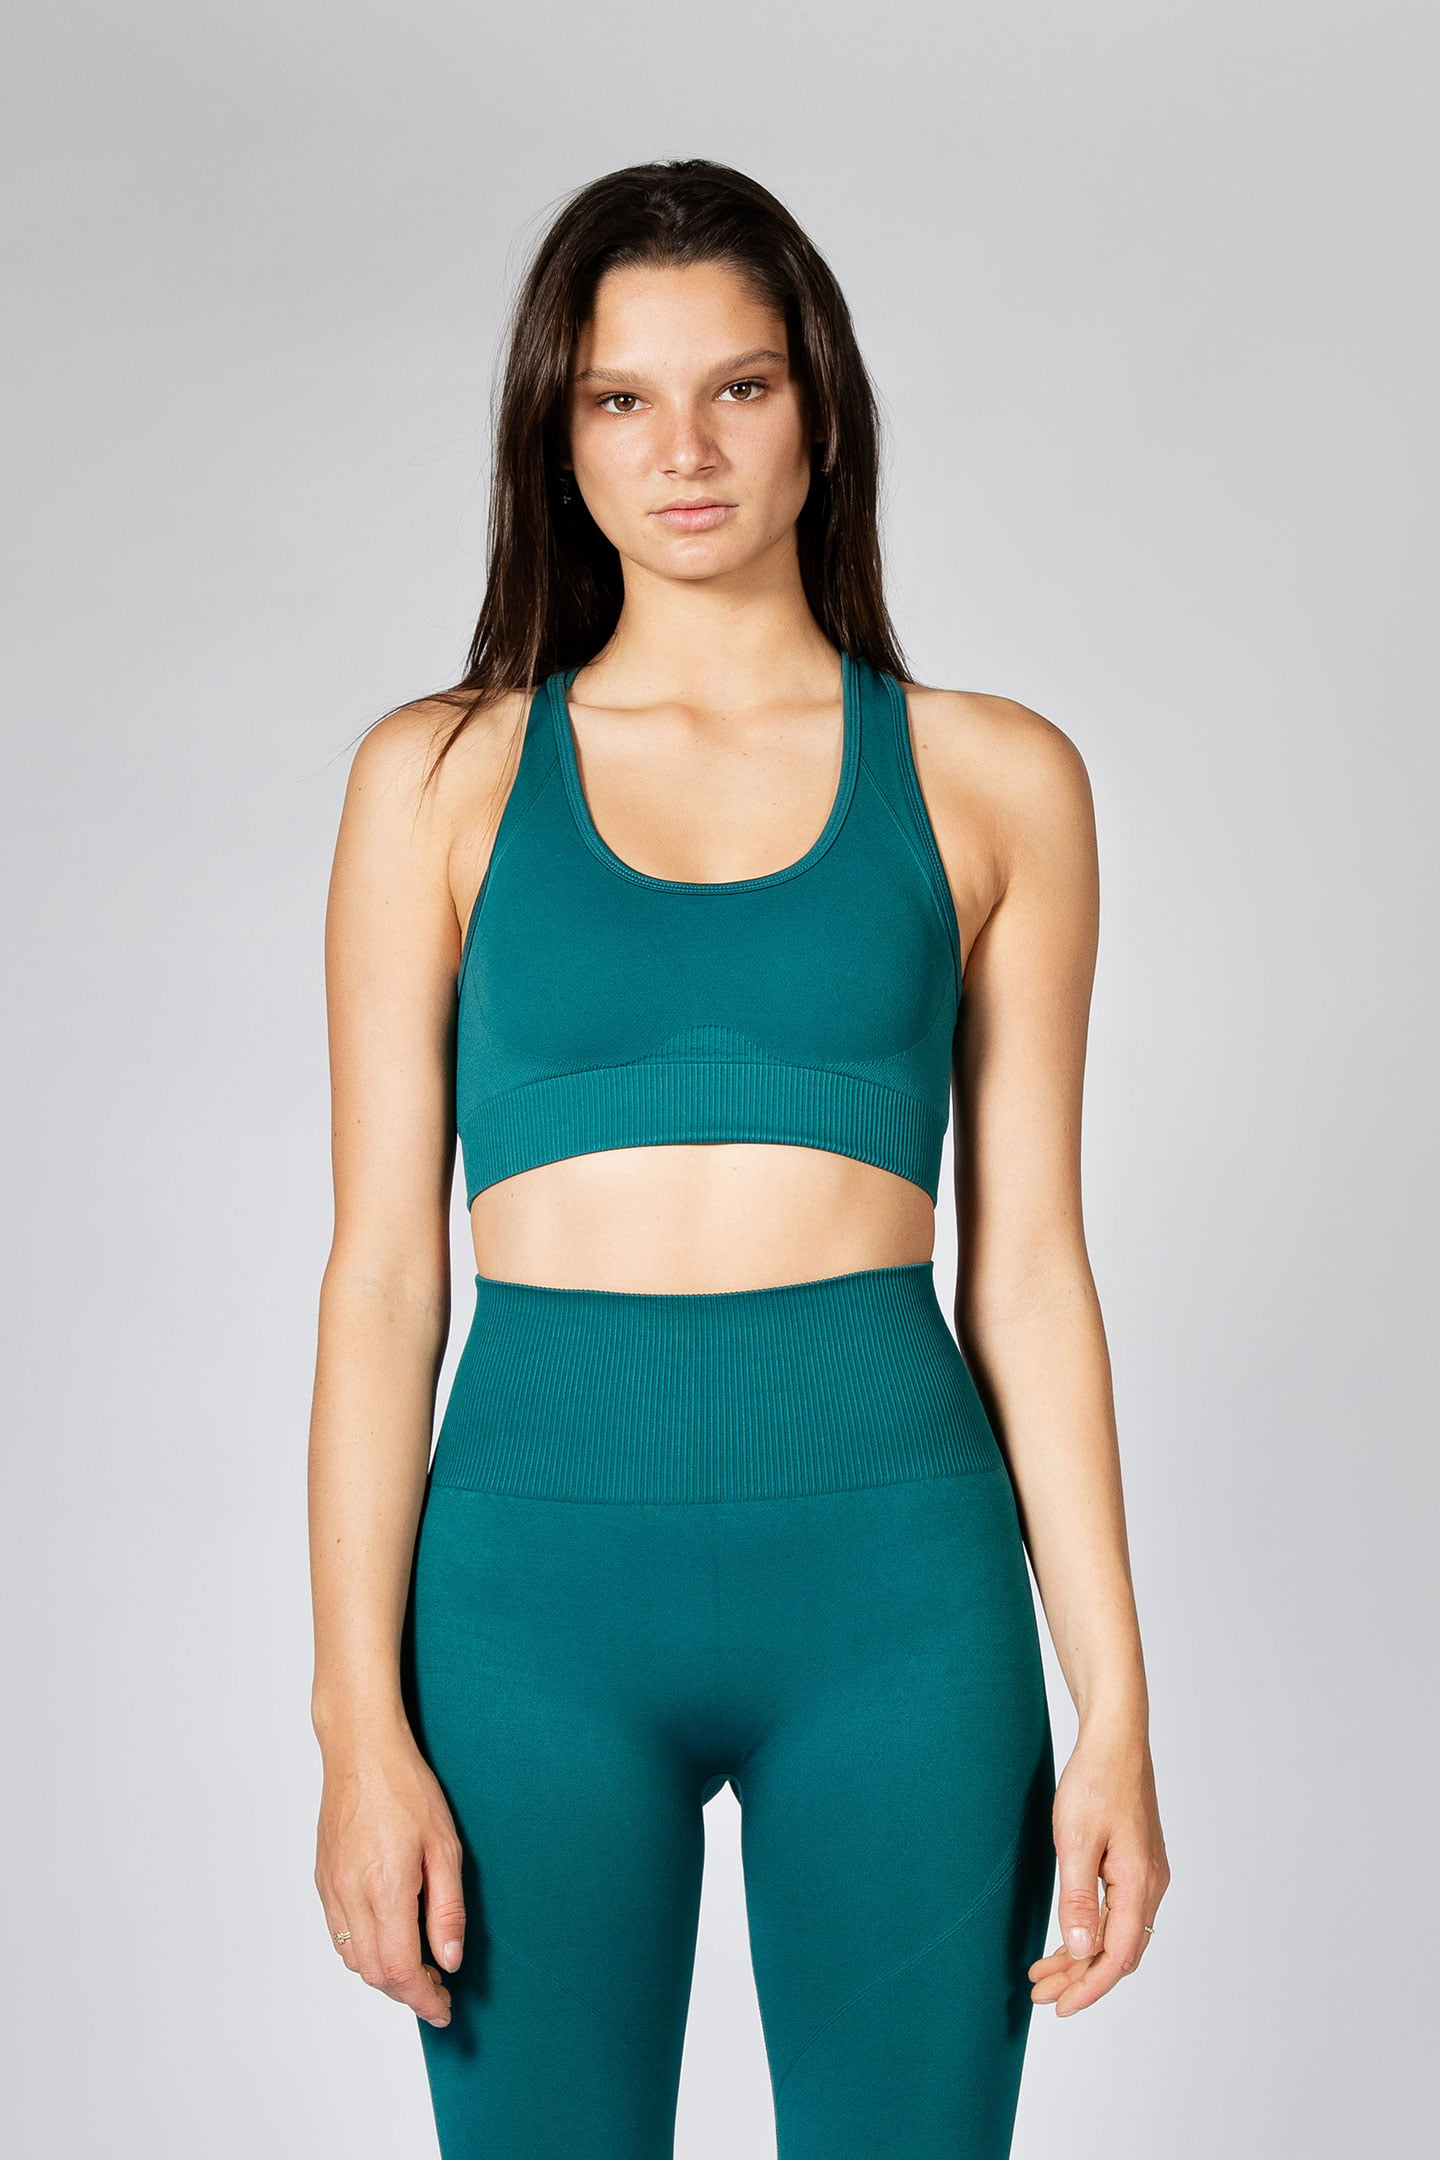 woman wearing seamless sports bra in emerald colour